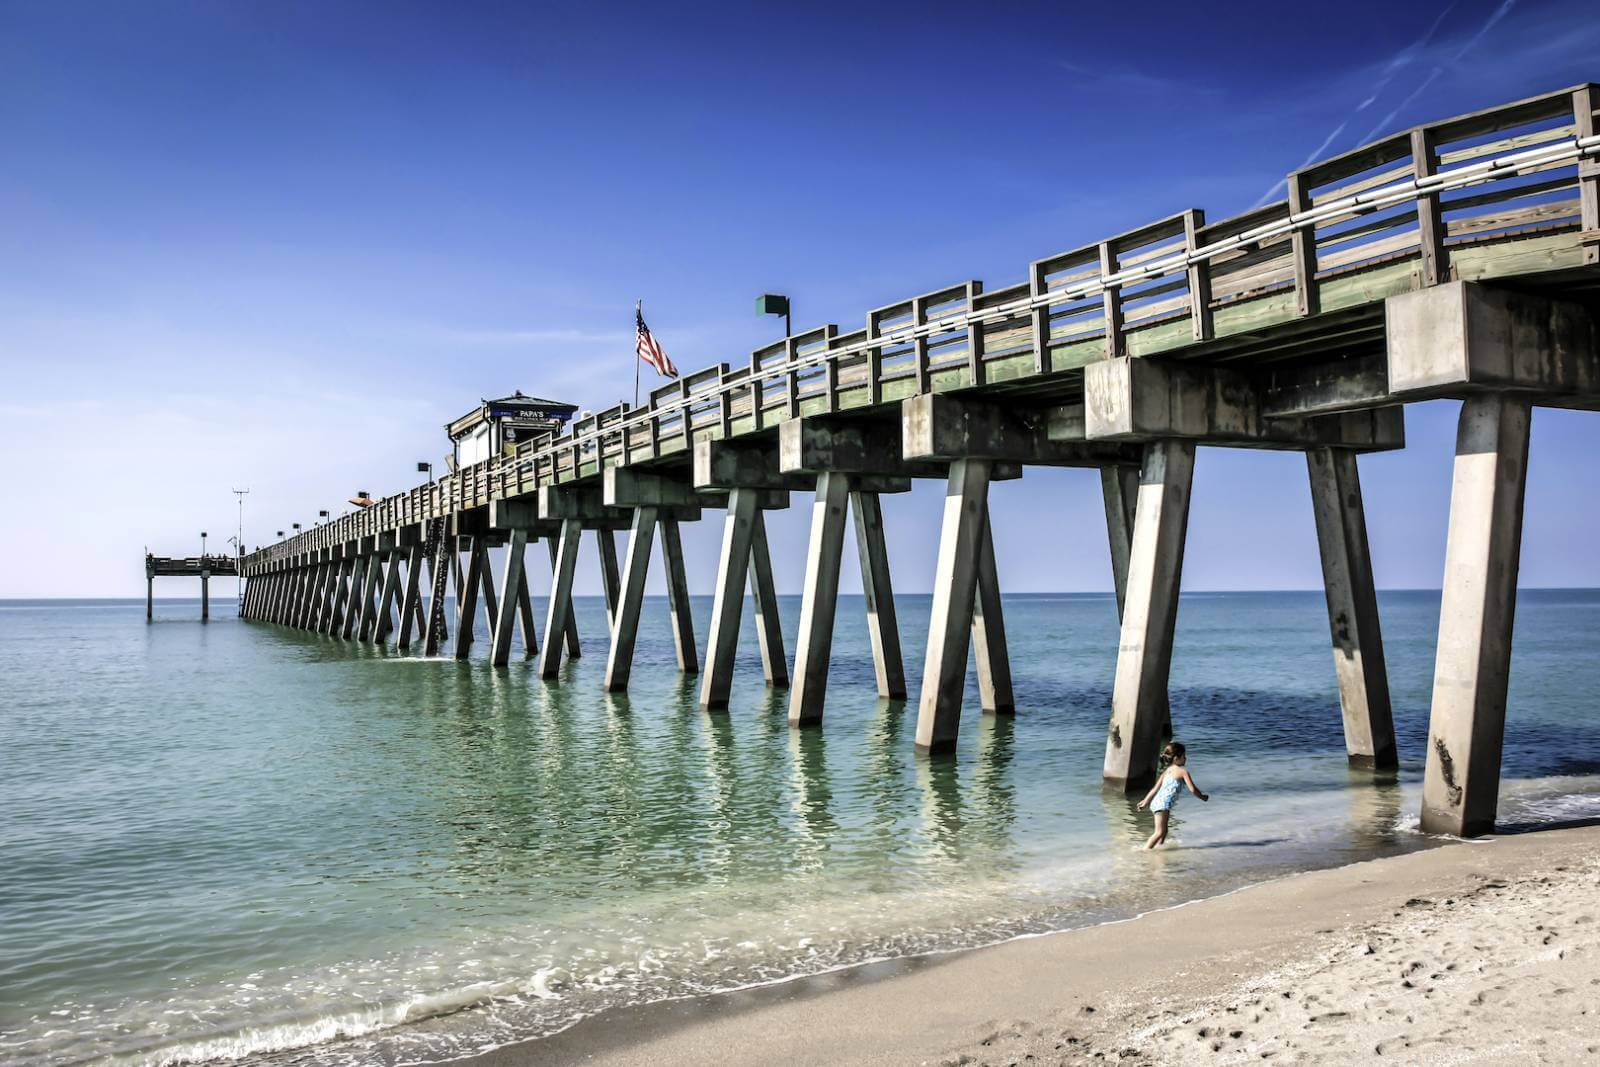 Venice Municipal Pier is a popular place for fishing. No license is required and there's no admission fee. It's open 24 hours a day and shark fishing is popular after dark. #VeniceFlorida